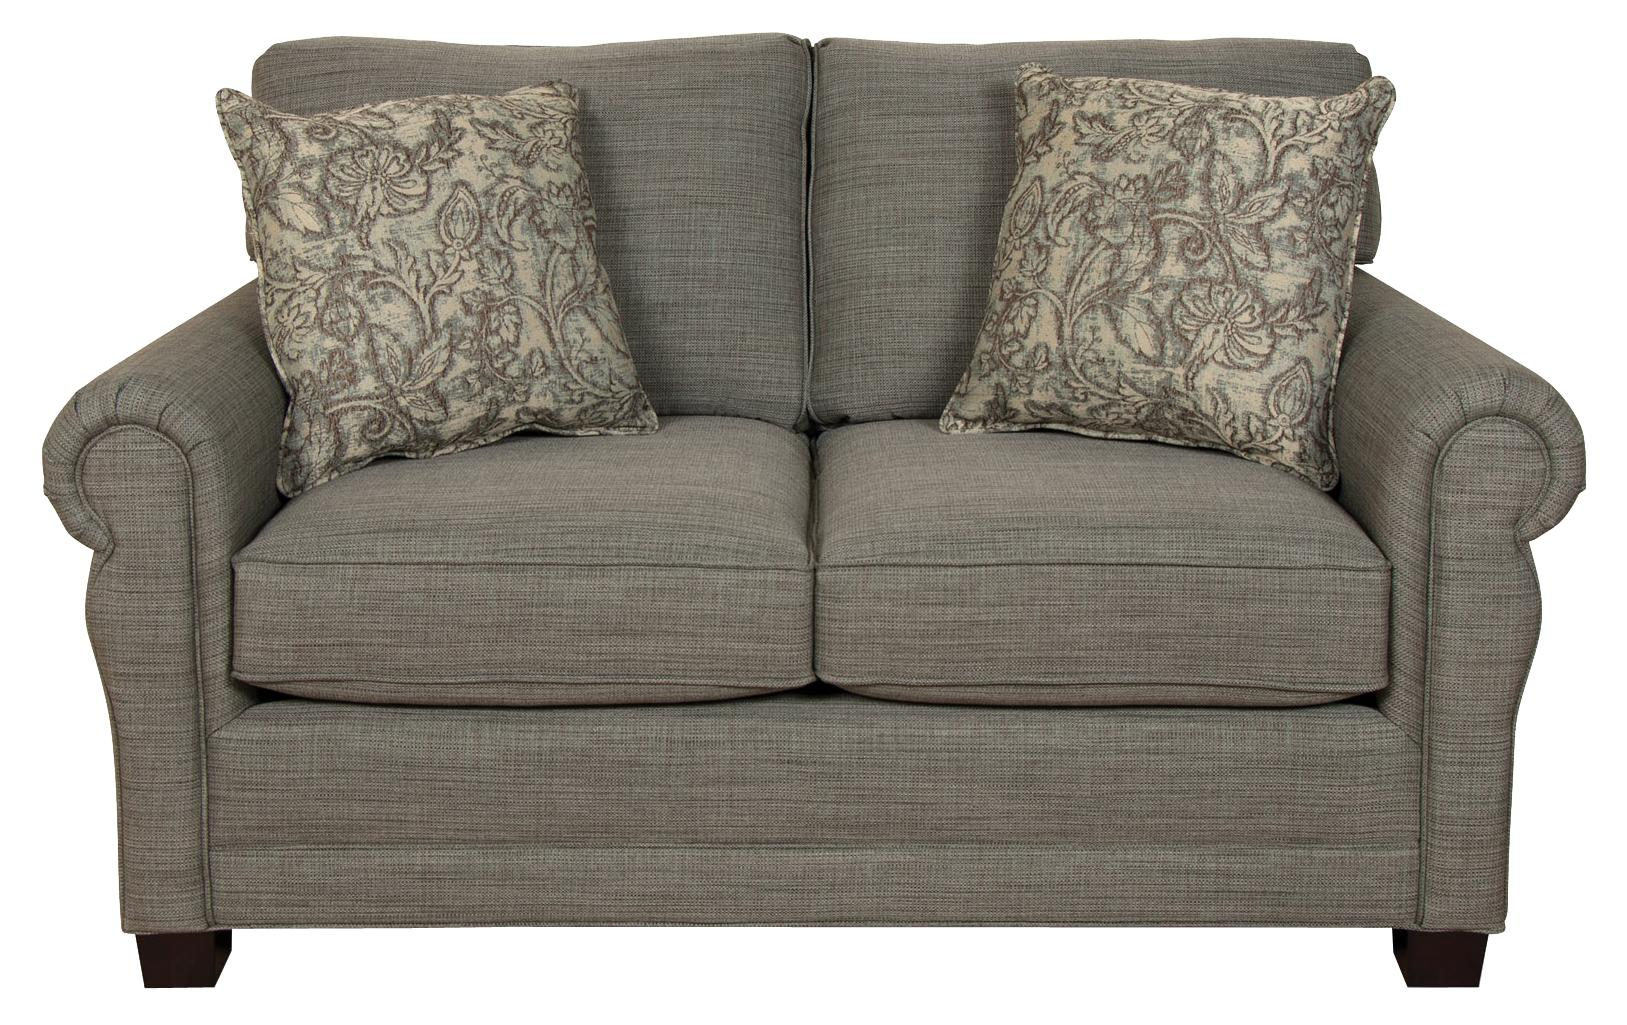 England Green Two Cushion Loveseat - Item Number: 6936